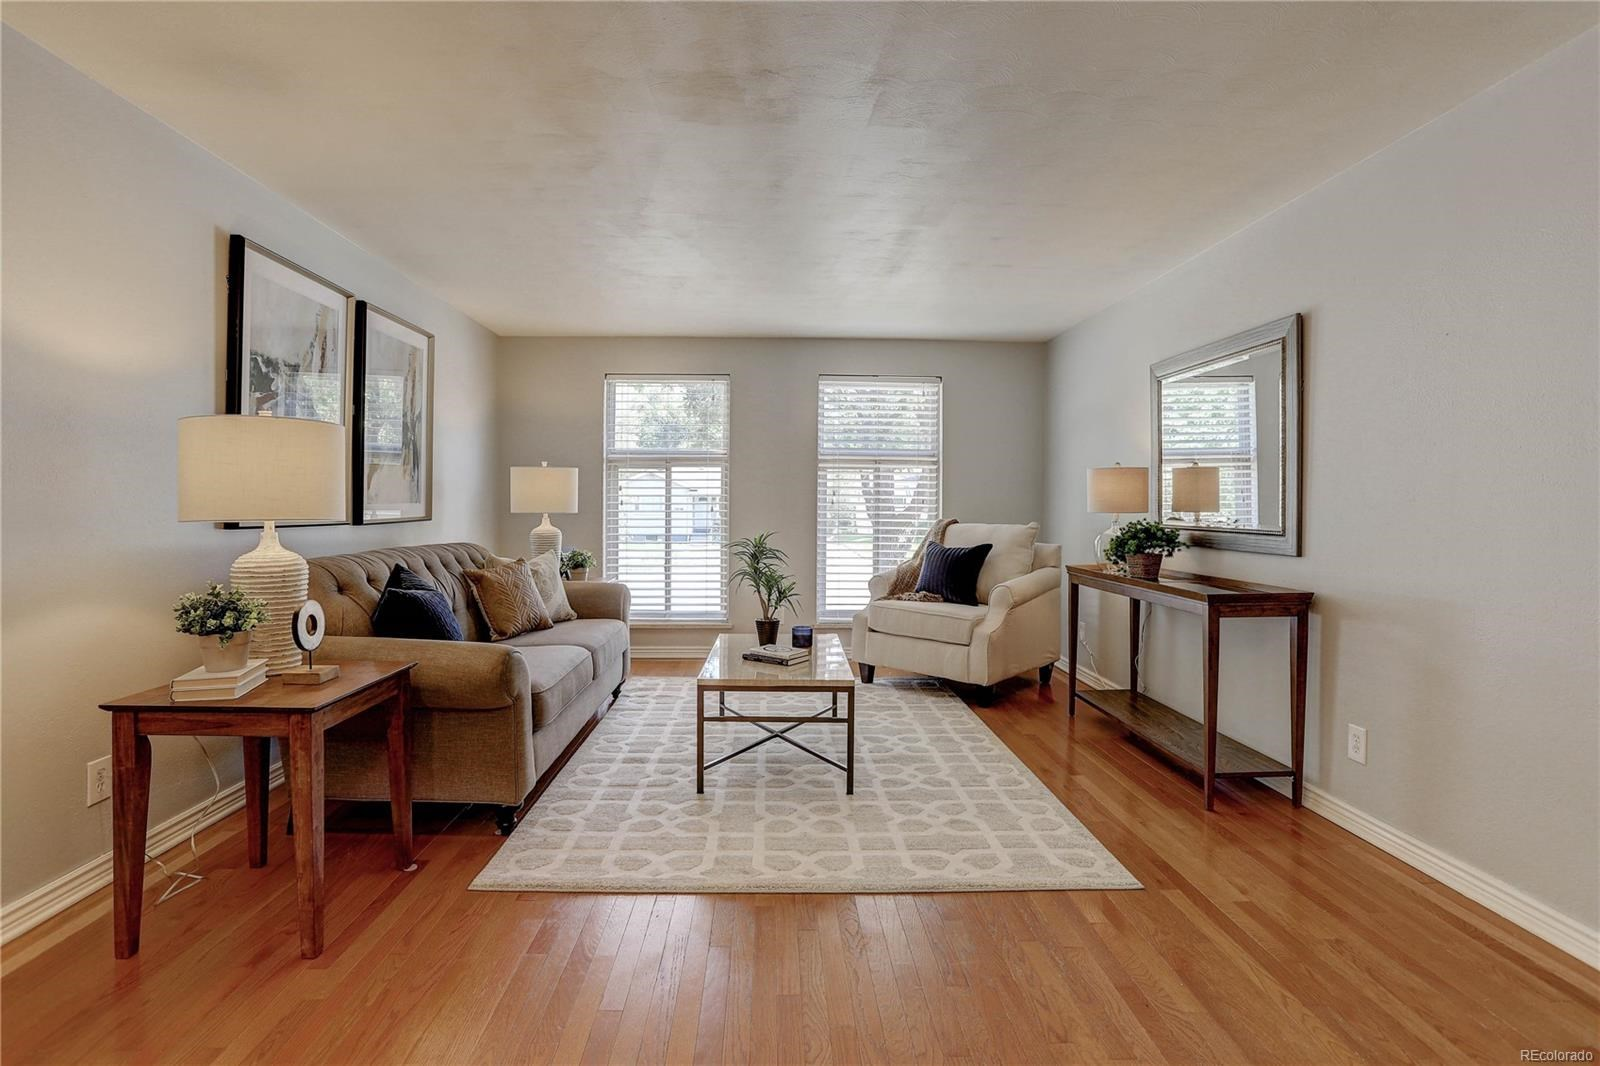 MLS# 2968148 - 12 - 2931 S Downing Street, Englewood, CO 80113